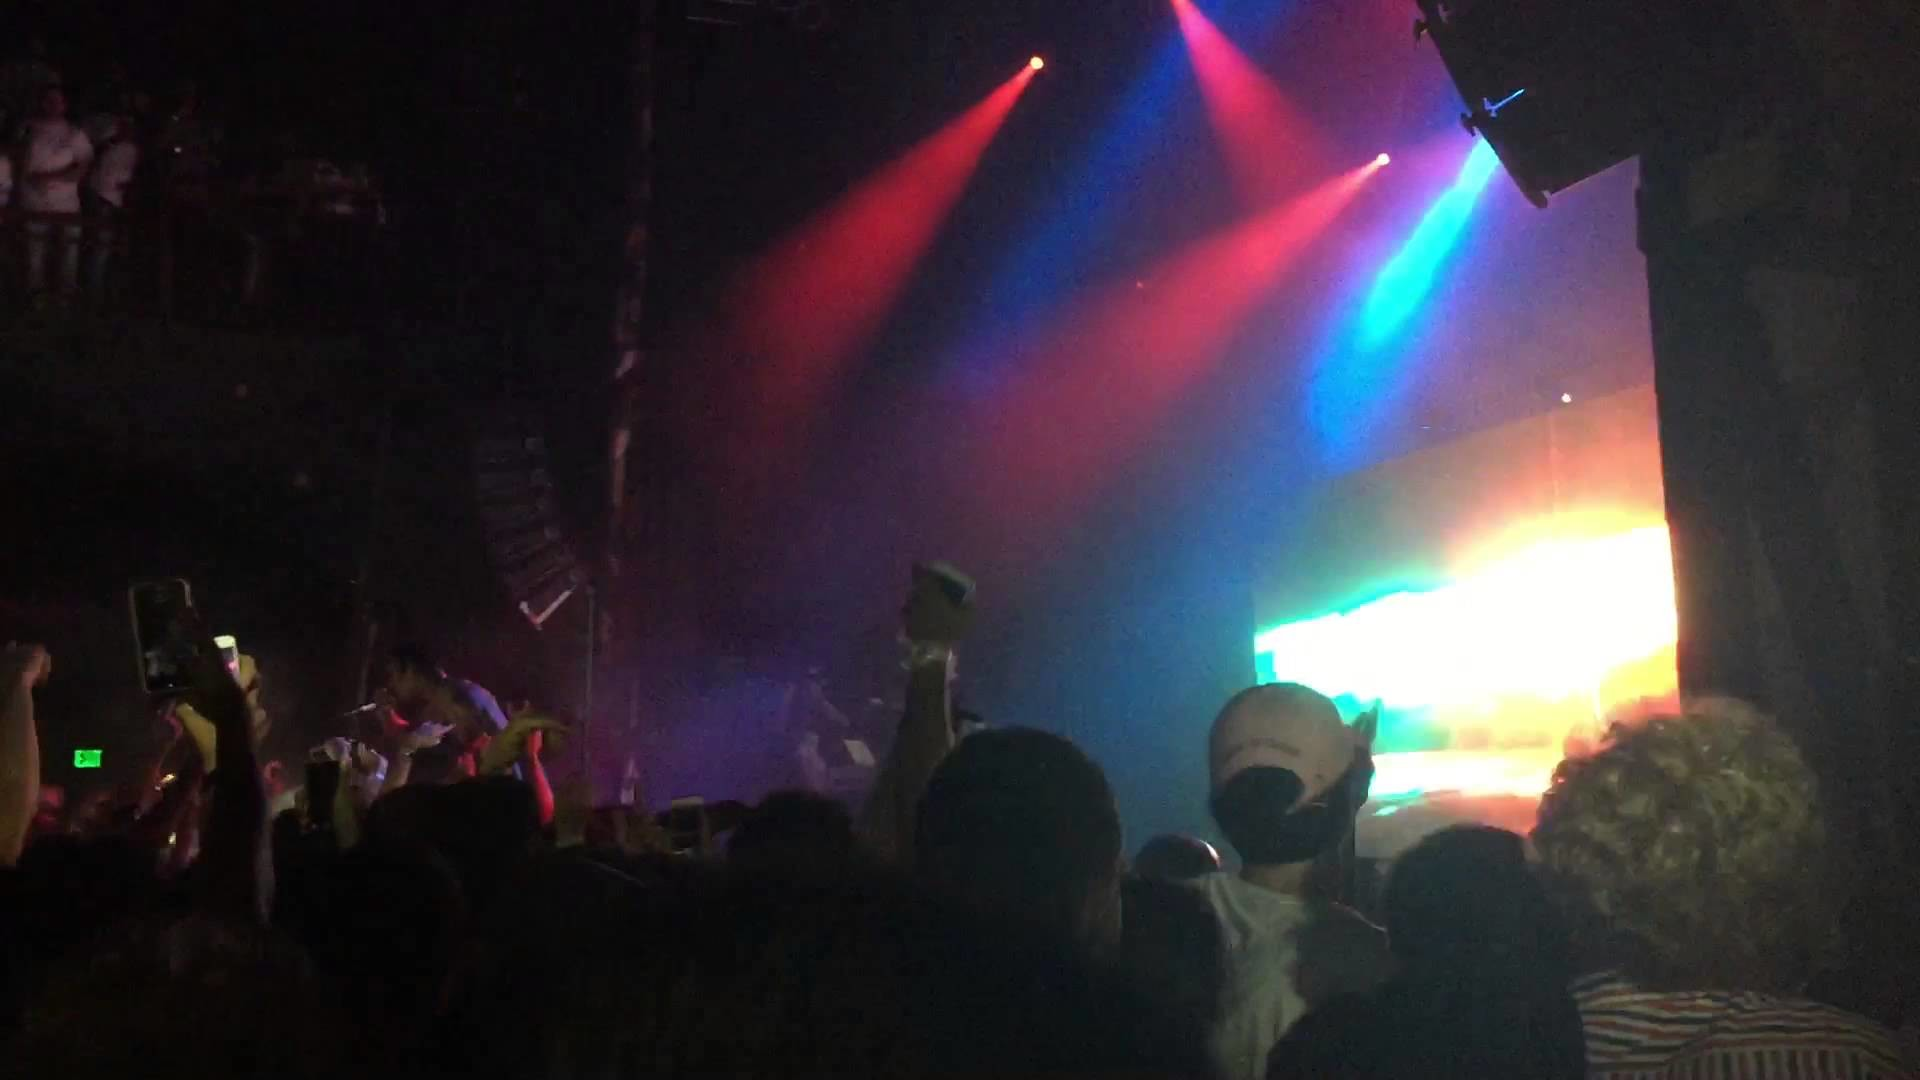 Travis Scott Rodeo Tour House of Blues Houston, Tx 9/4/15 – Wasted